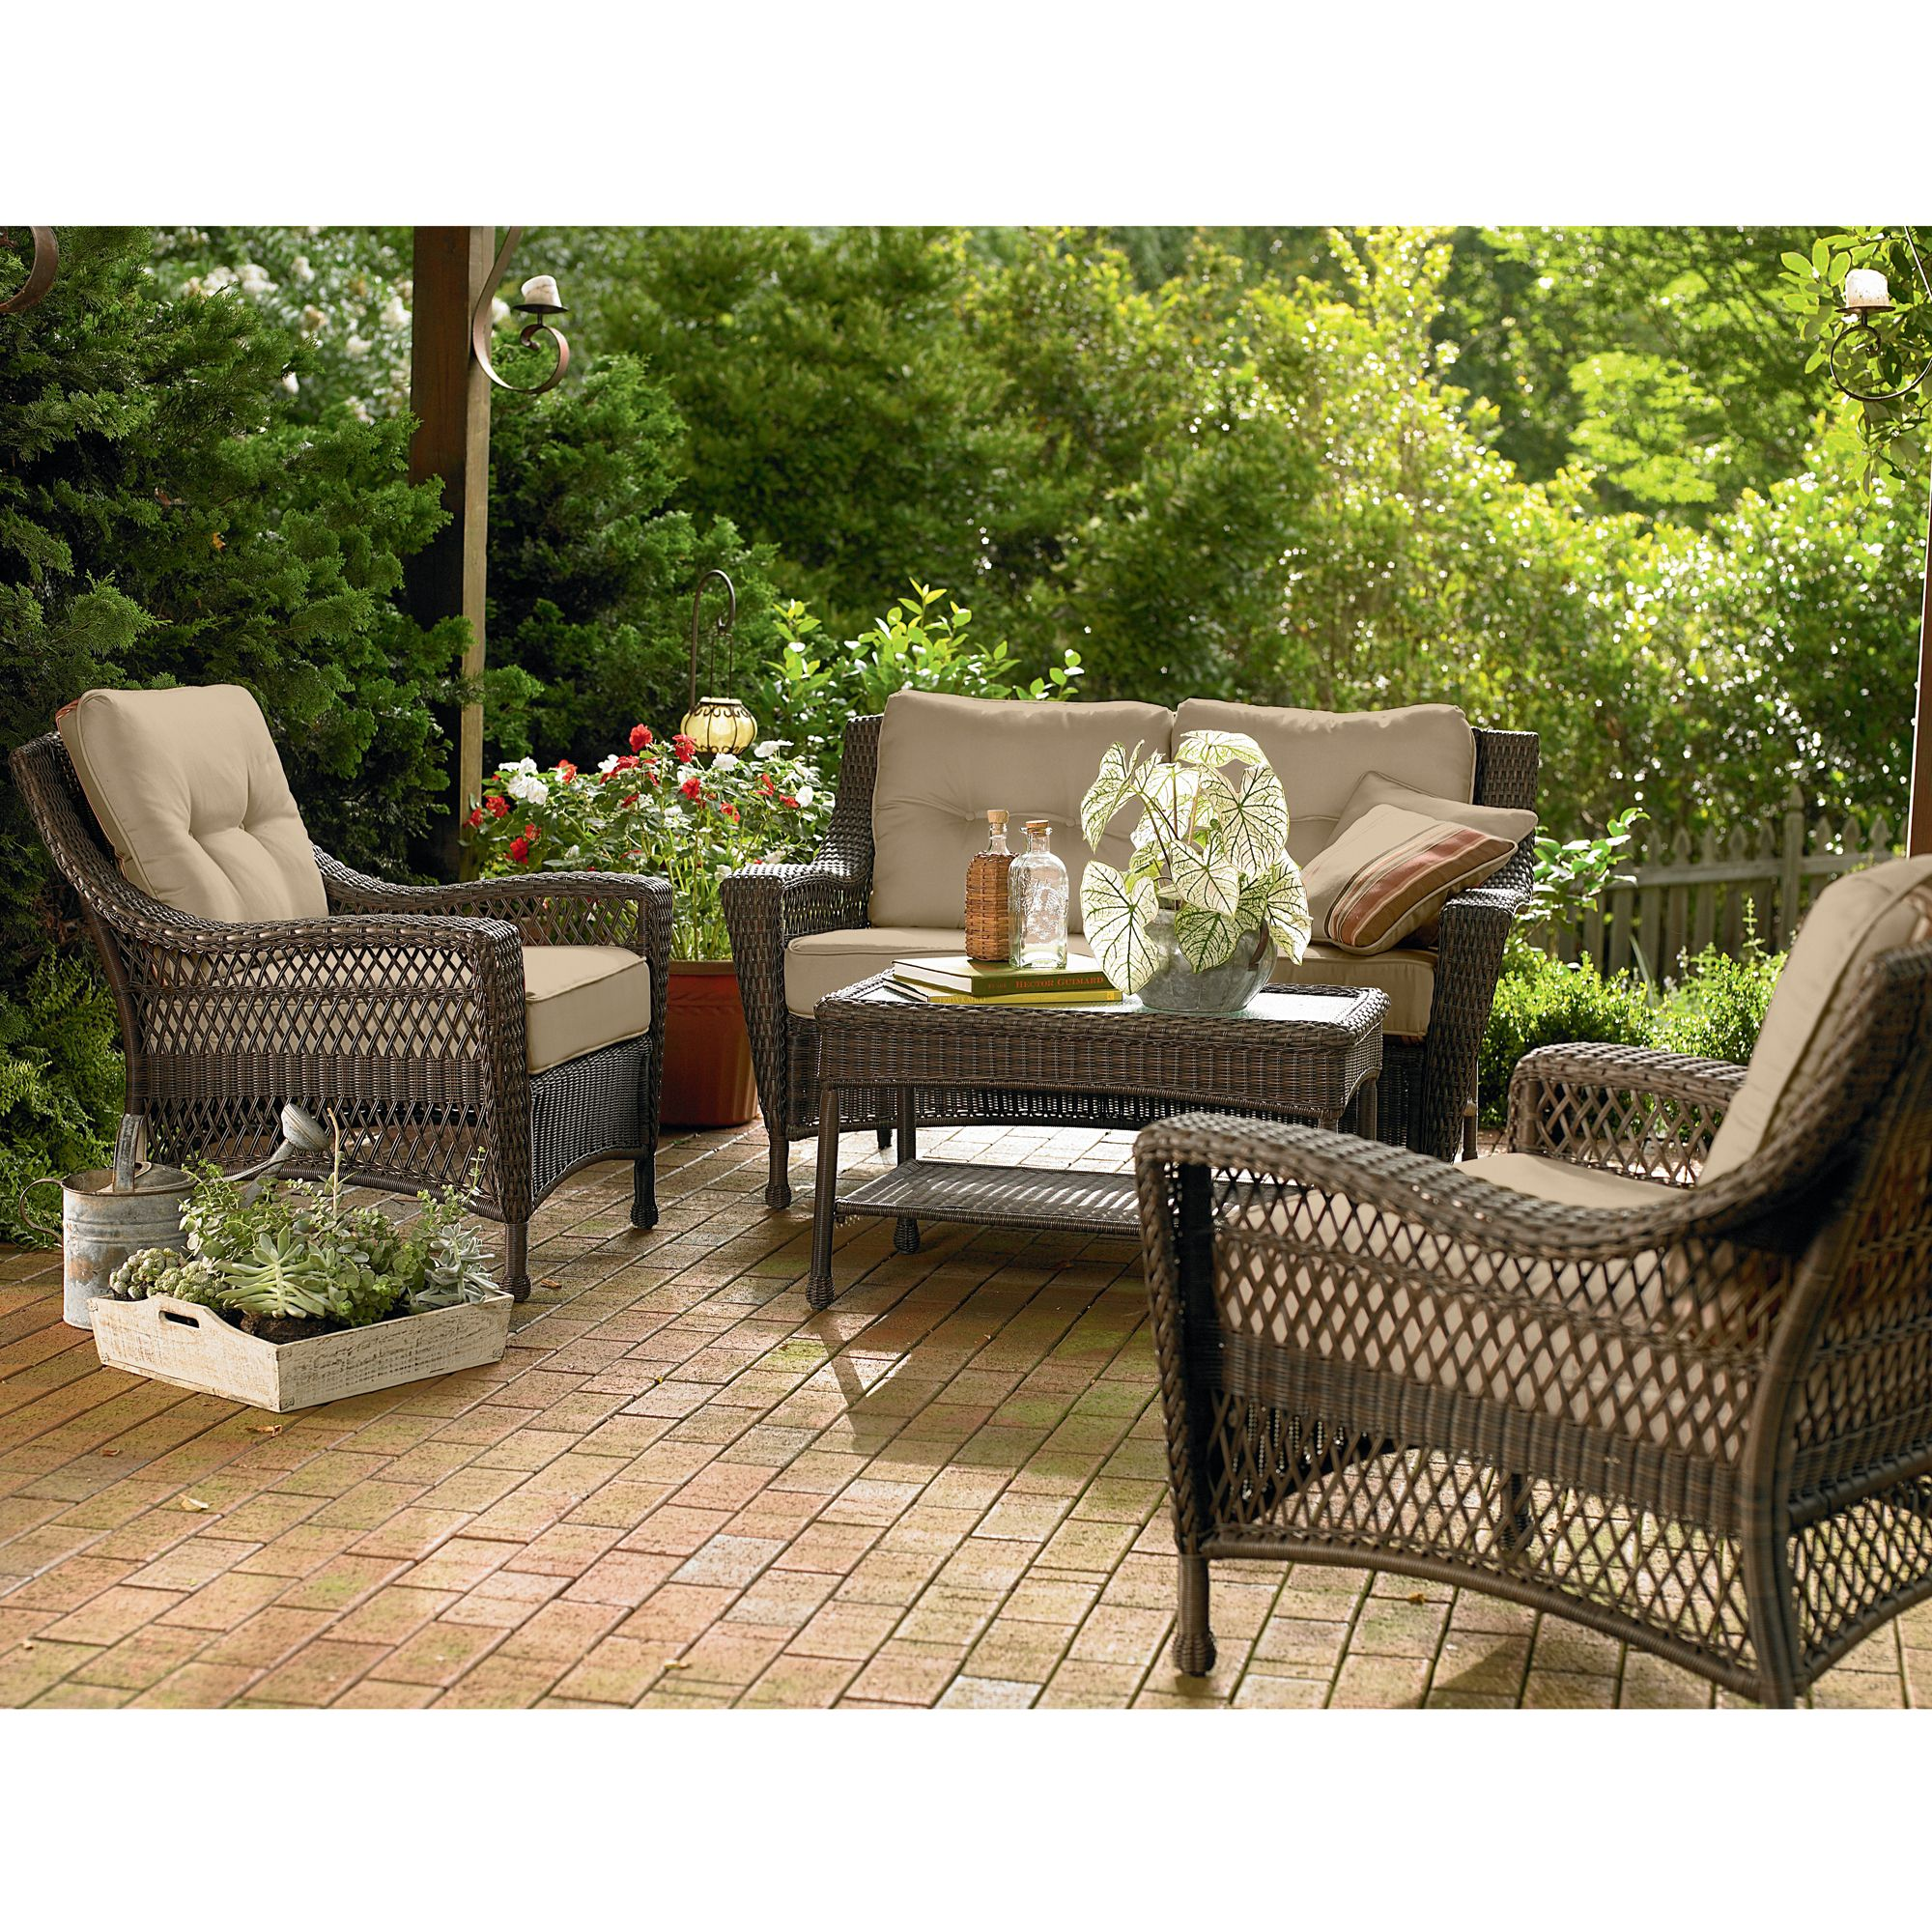 Country Living Concord Deep Seat Patio Set - Outdoor ... on Casual Living Patio id=32706